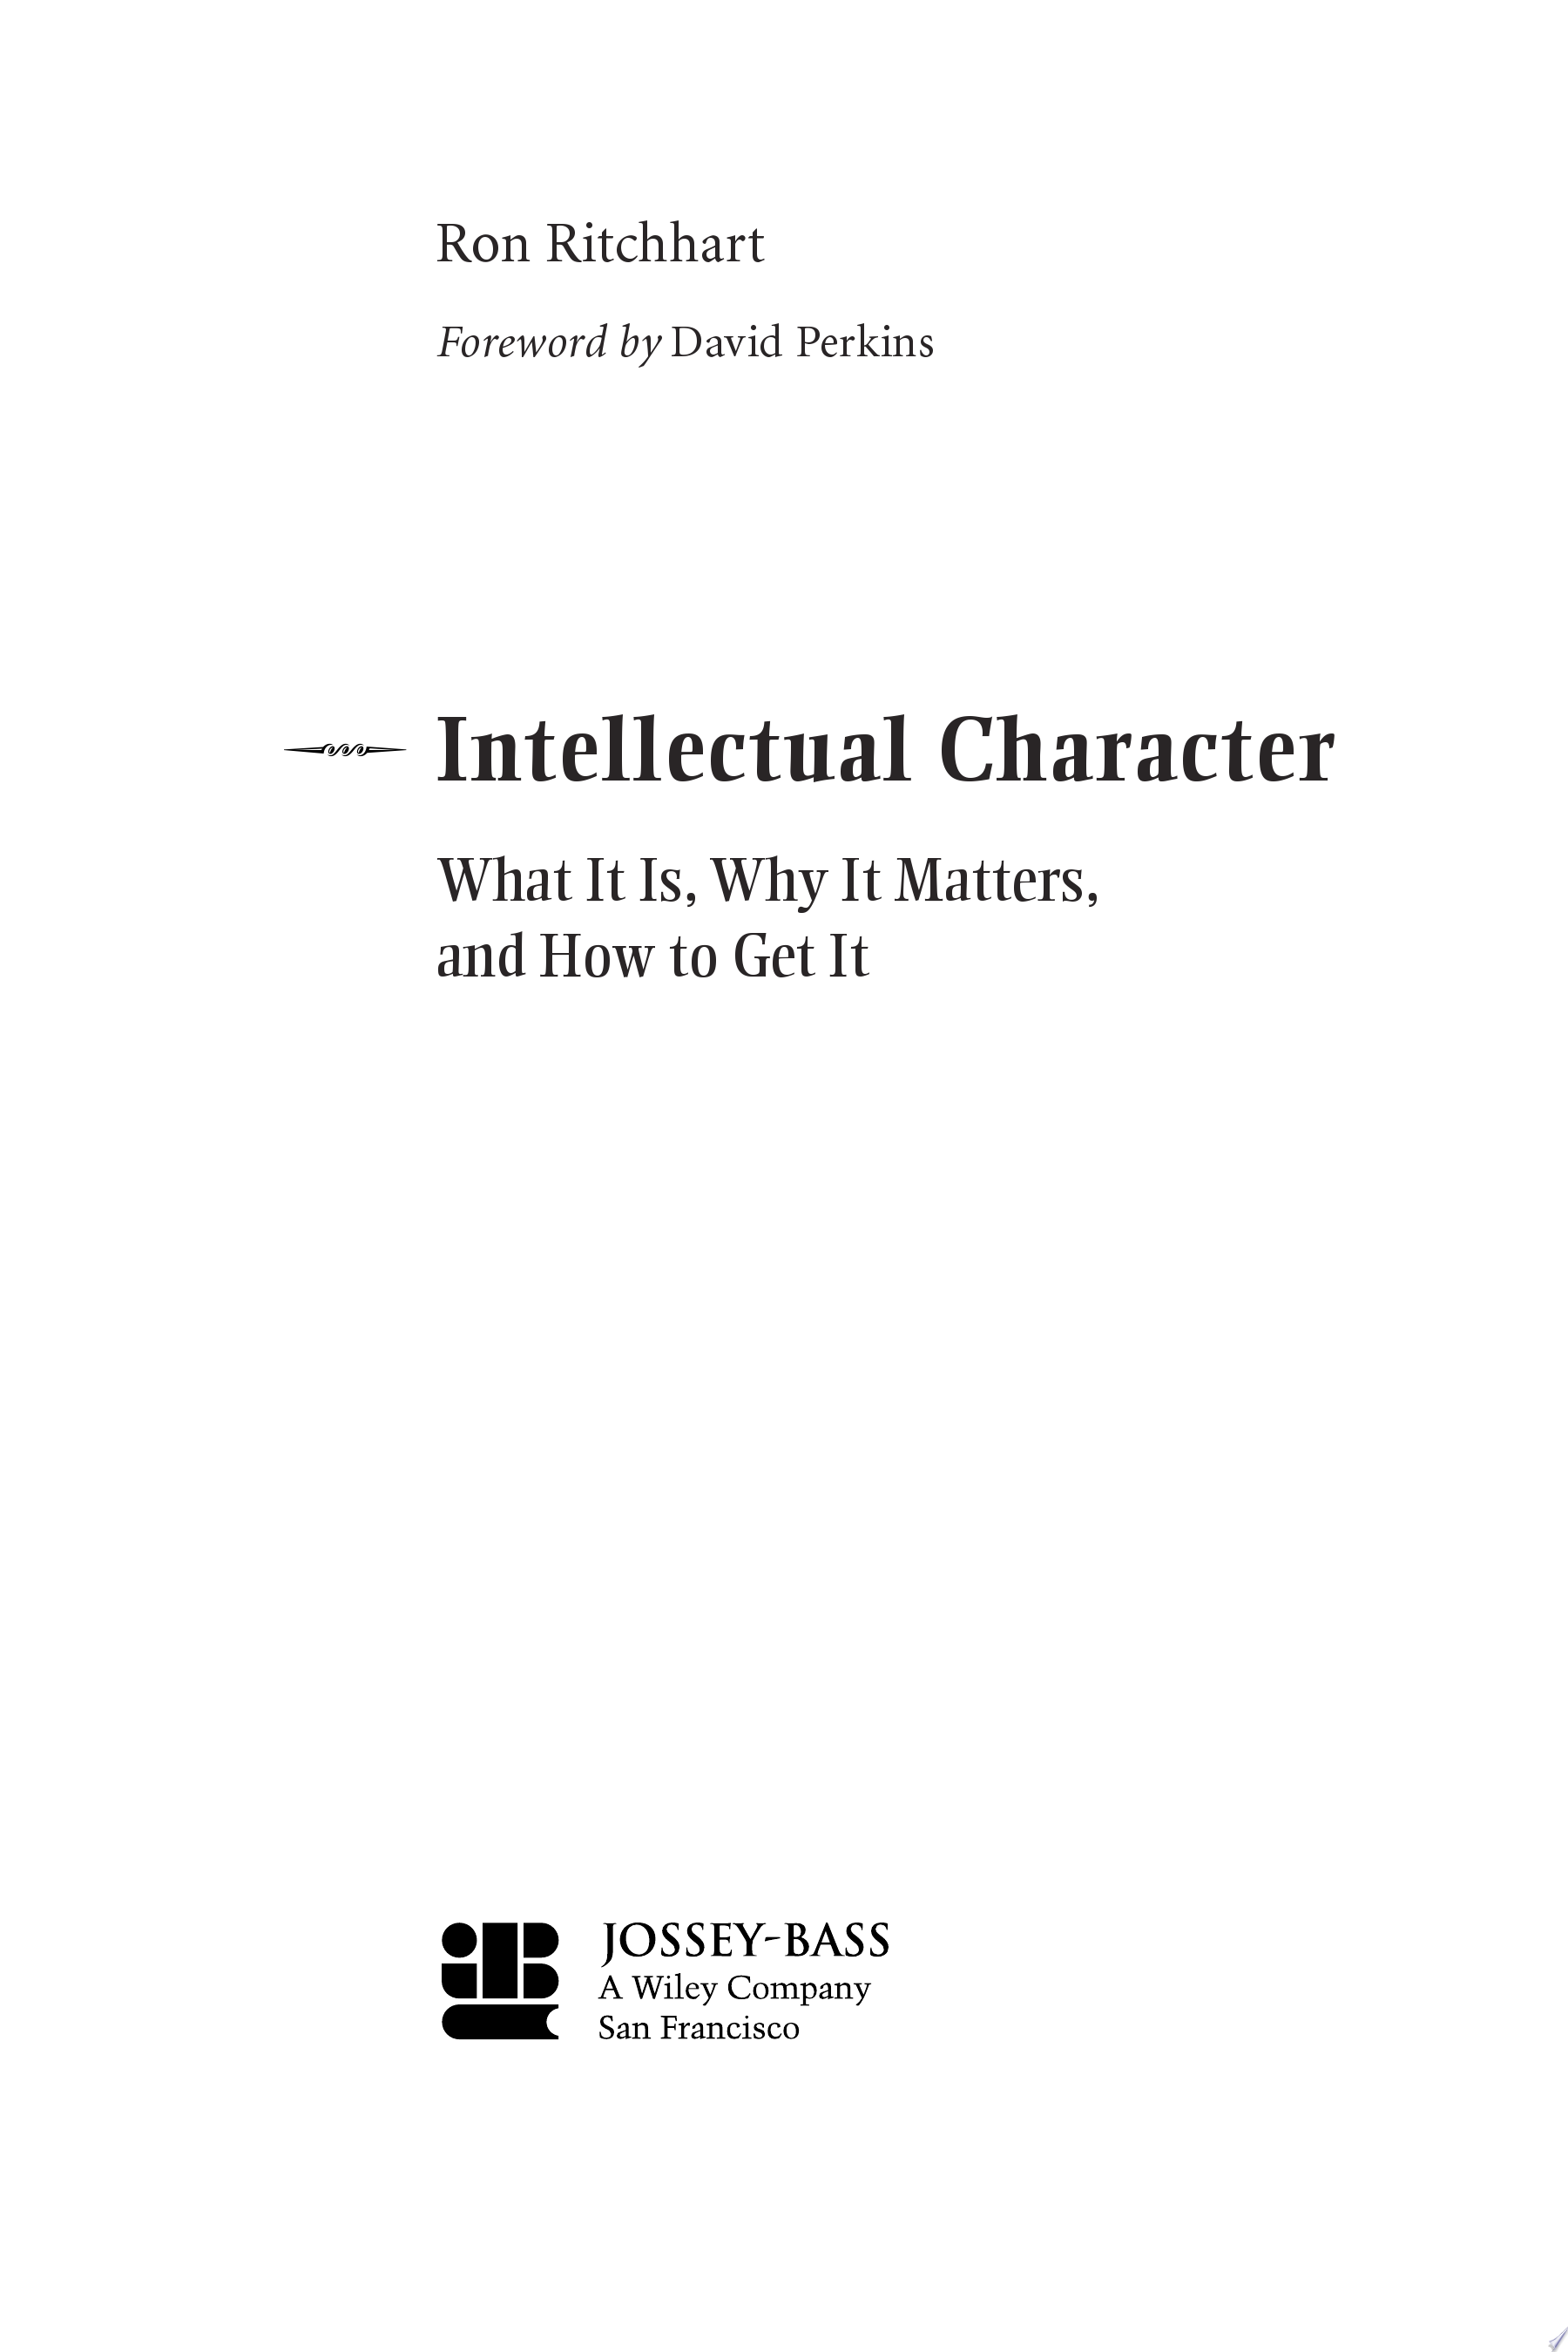 Intellectual Character